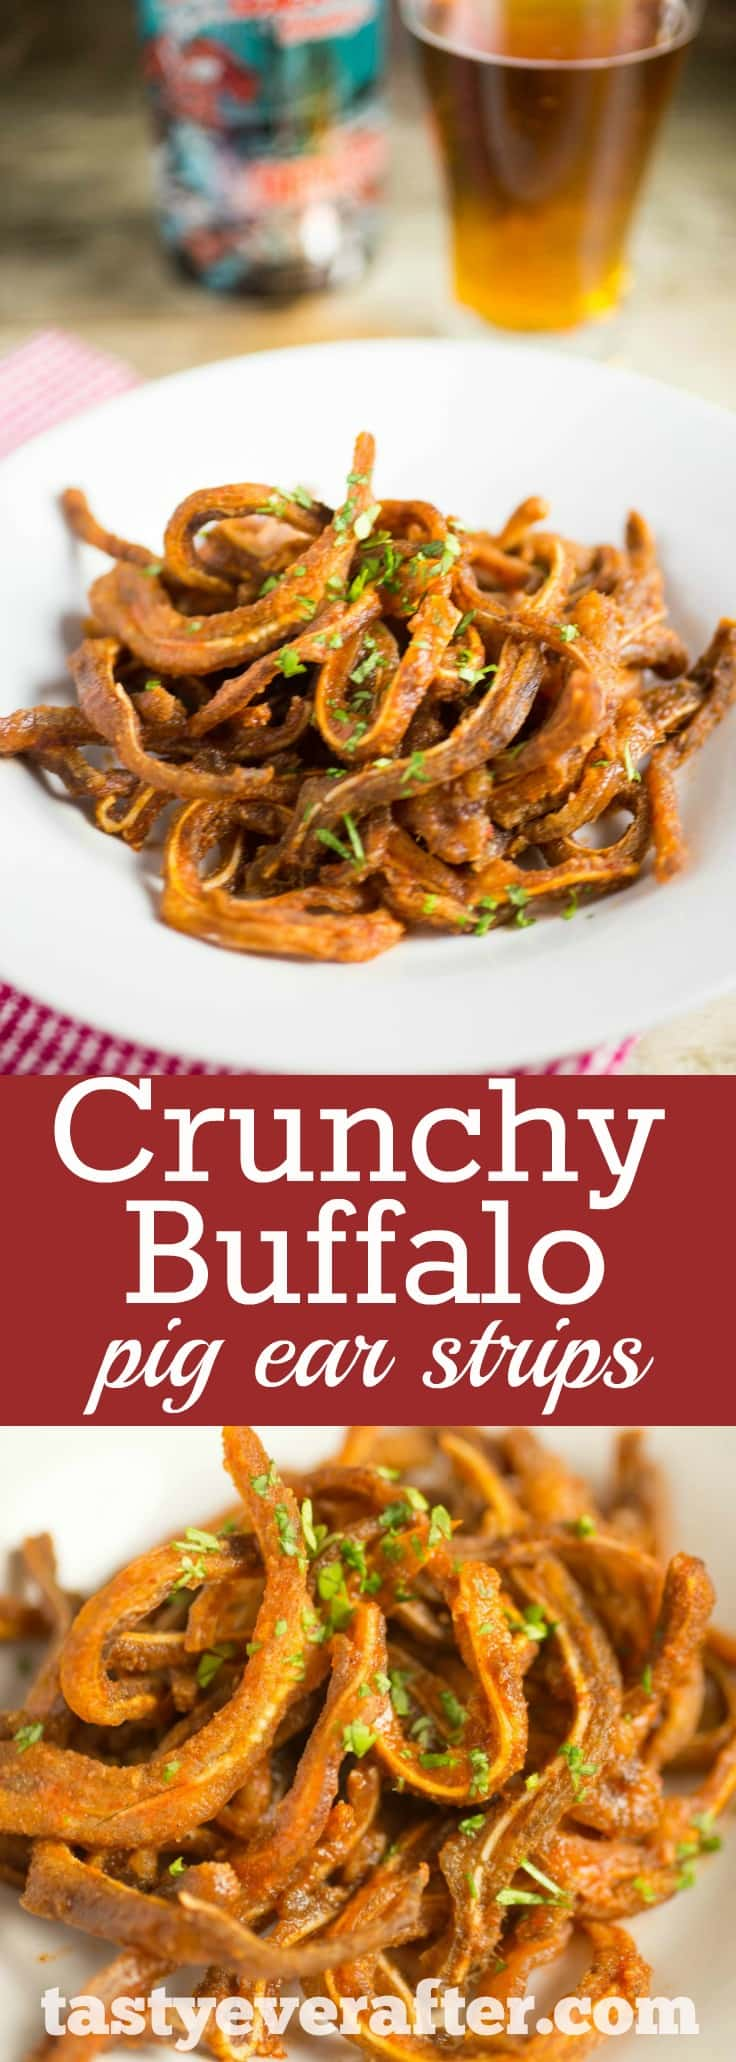 Crunchy Buffalo Pig Ear Recipe Pinterest PIN